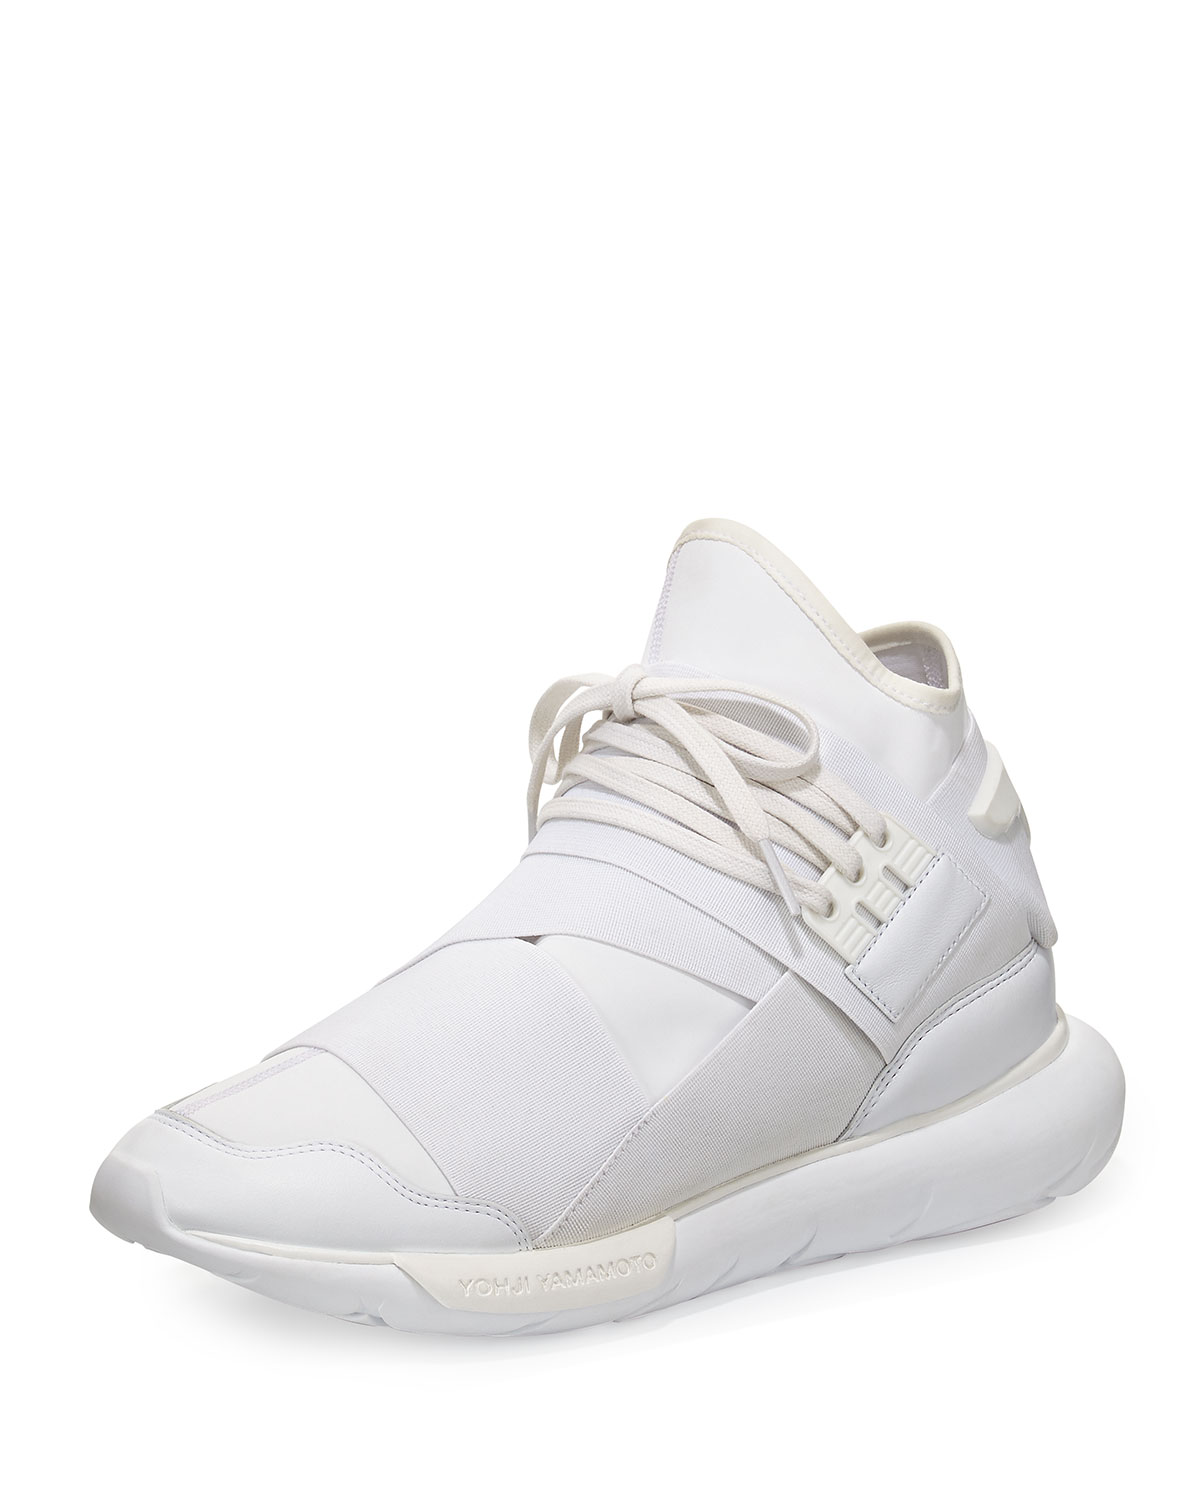 71a34f979a3ab Y-3 Qasa High-Top Trainer Sneaker